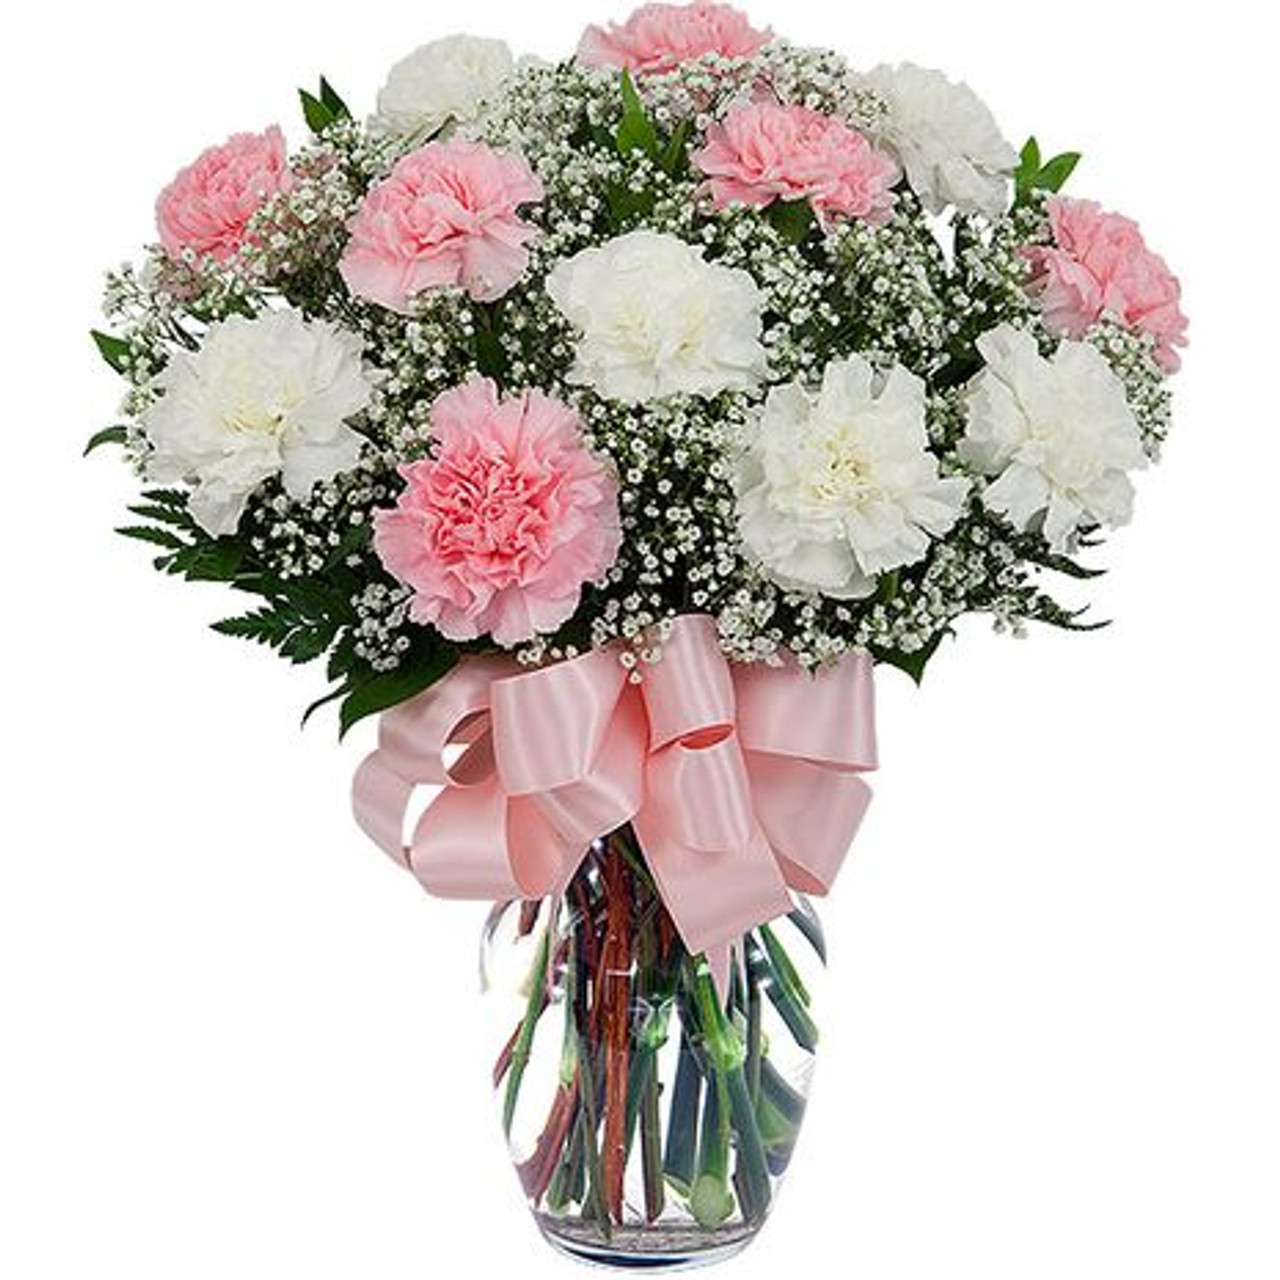 White and Pink Carnations Bouquet